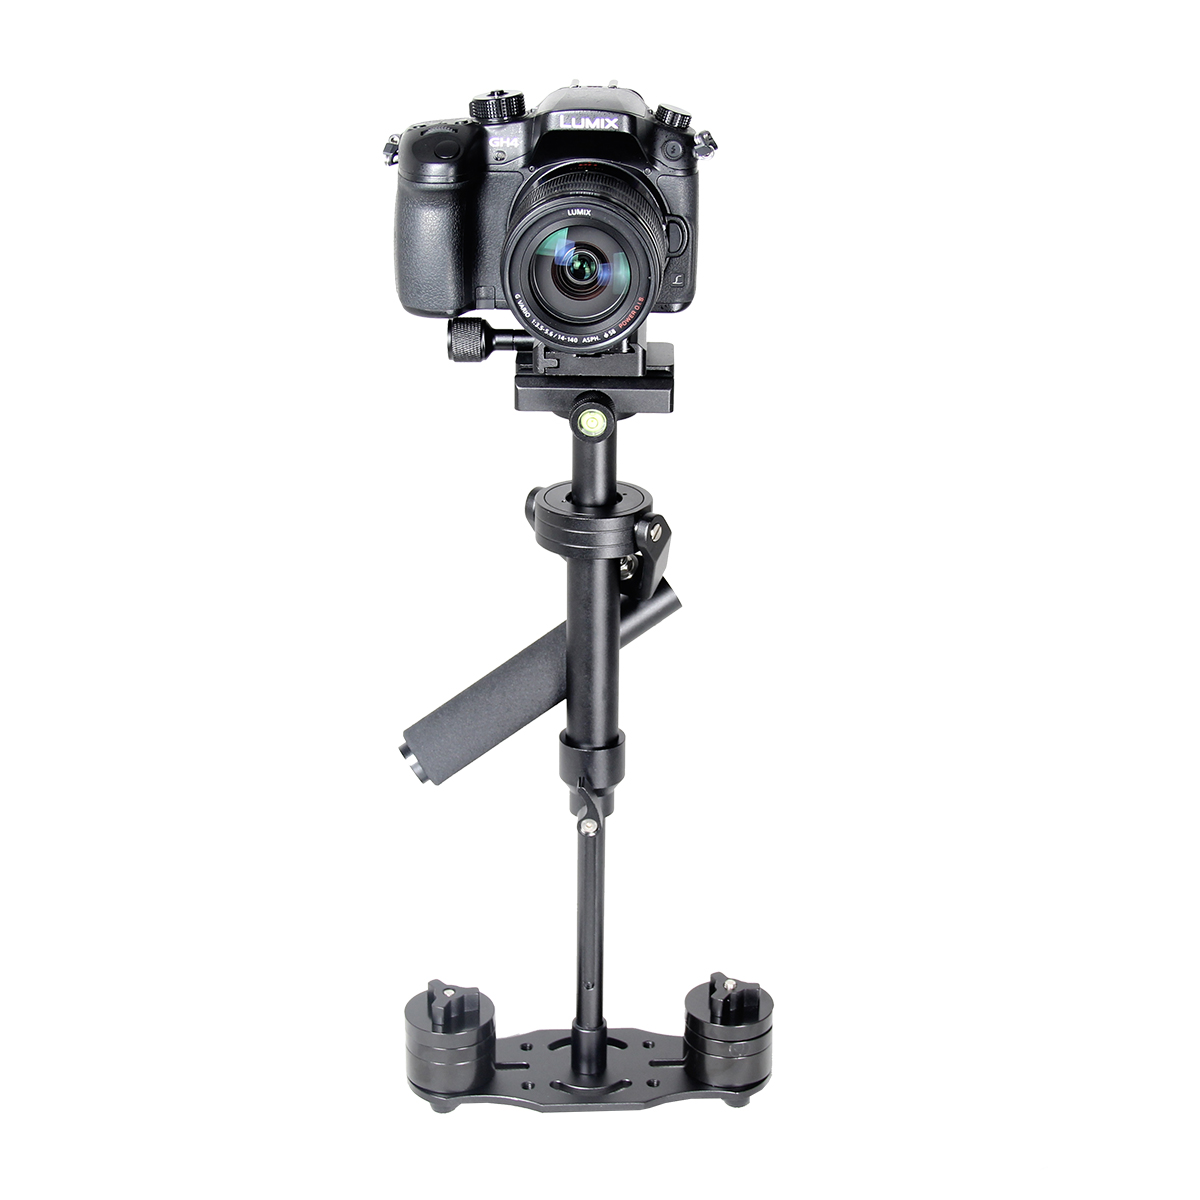 YELANGU Pro Version Easy Installment Handheld Stabilizer For DSLR Video Camera